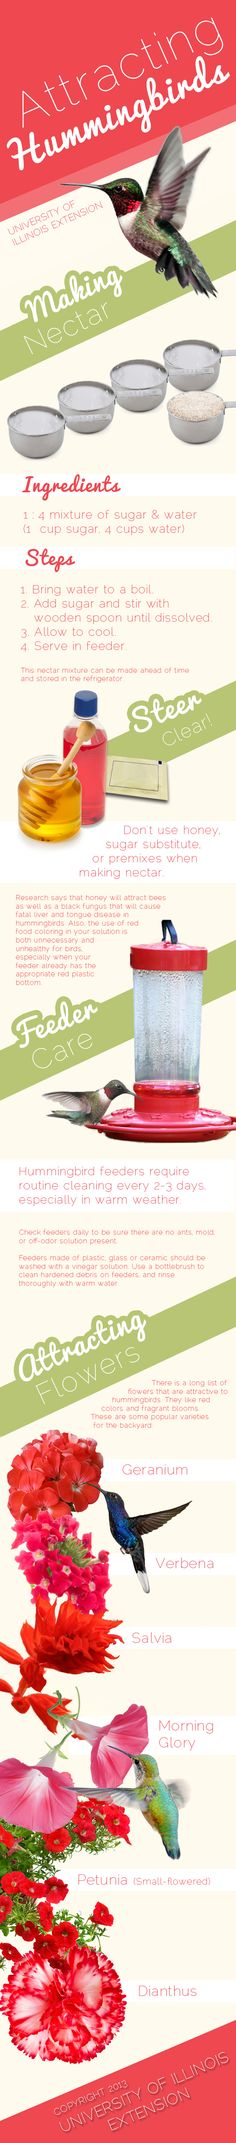 Learn some simple ways to attract hummingbirds to your garden. For Maggie!